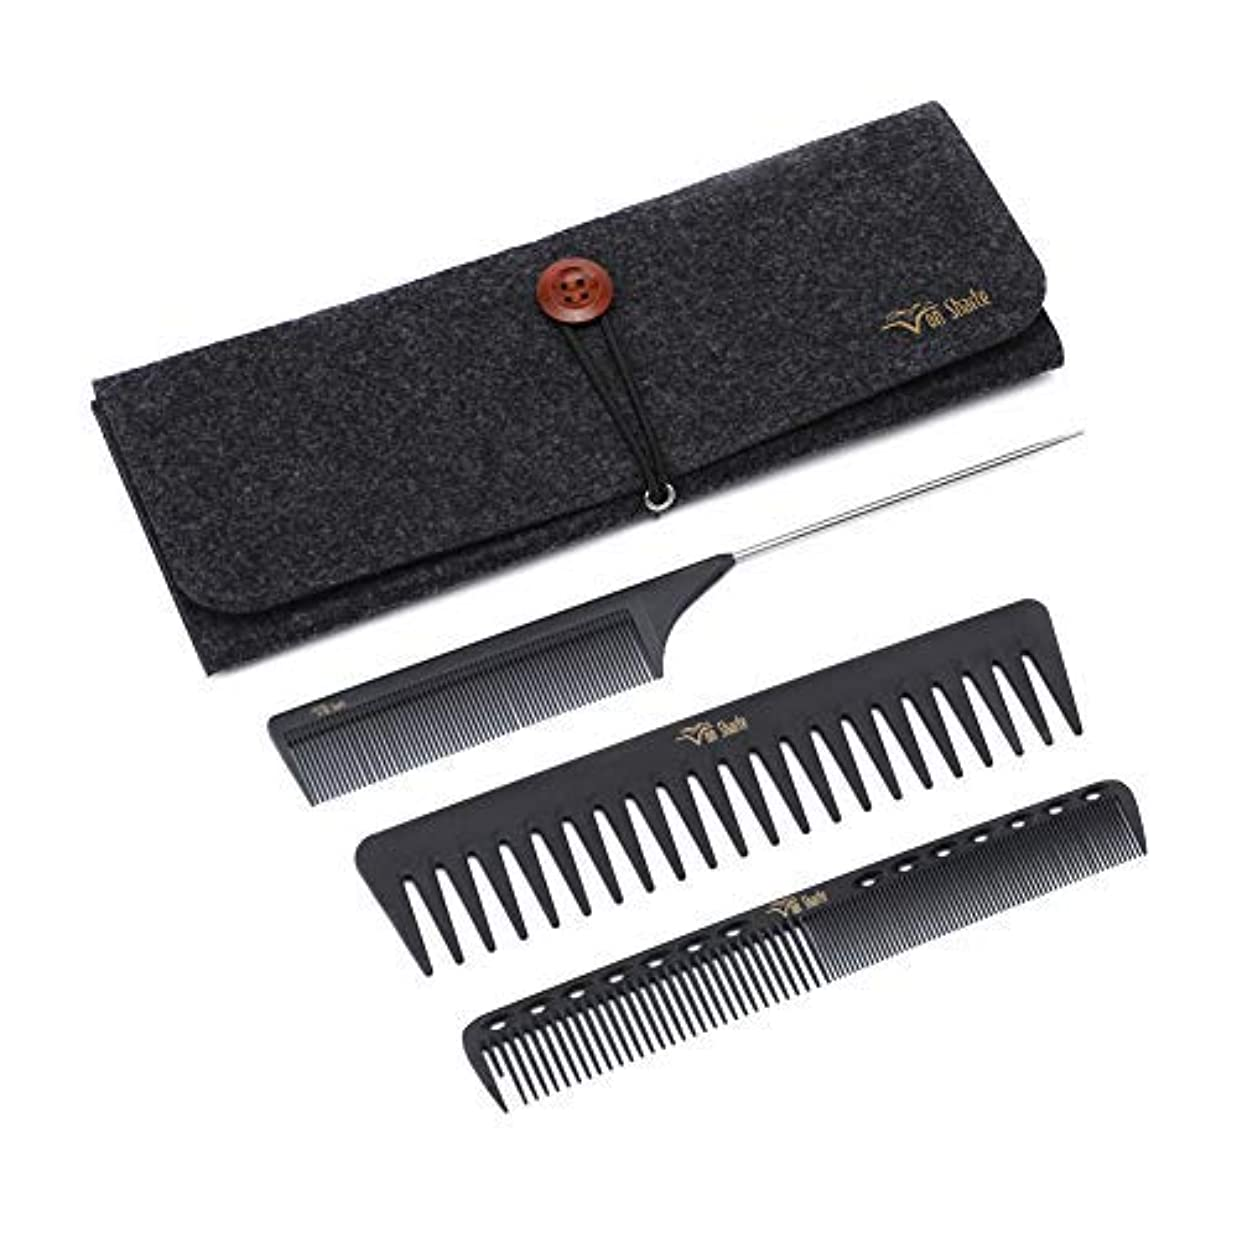 権限を与える変化社会学Styling Comb Set,Hairdresser Barber Comb Cutting Hair Comb Carbon Fiber Wide Tooth Comb Metal Rat Pin Tail Comb...